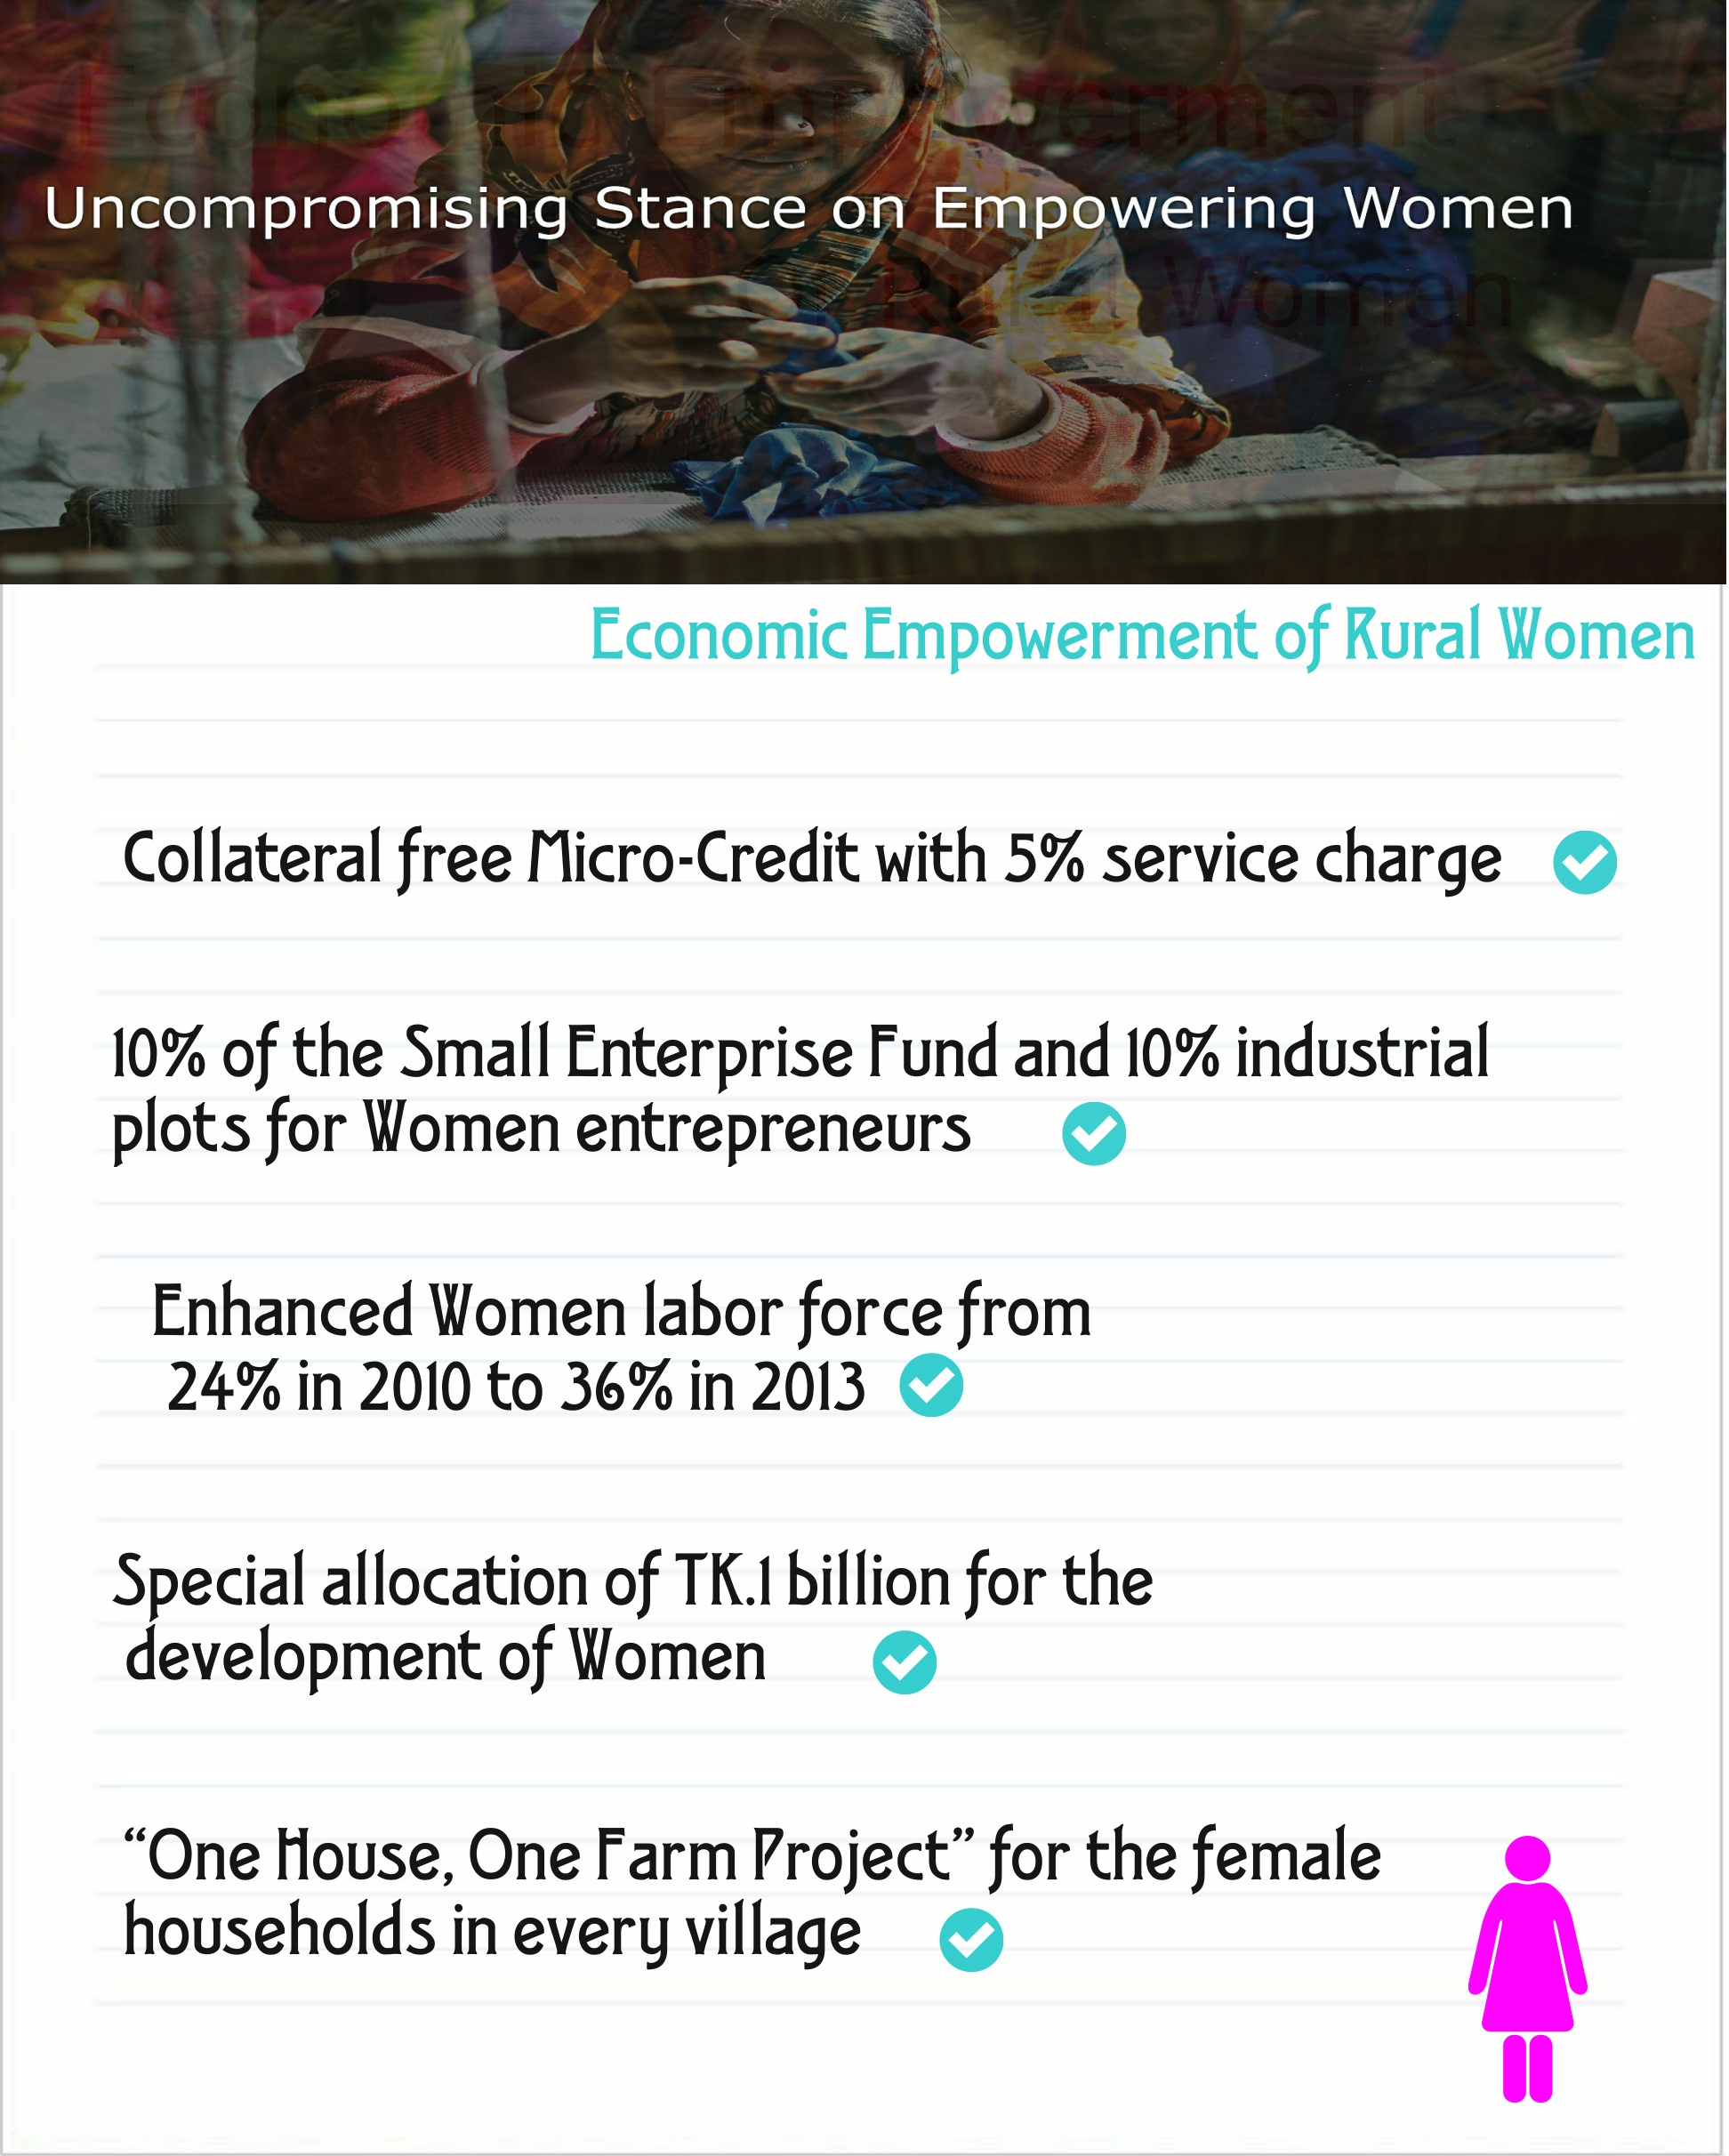 development of women empowerment in  for the economic empowerment of rural women collateral micro credit is given 5% service charge women entrepreneurs receive 10% of the small